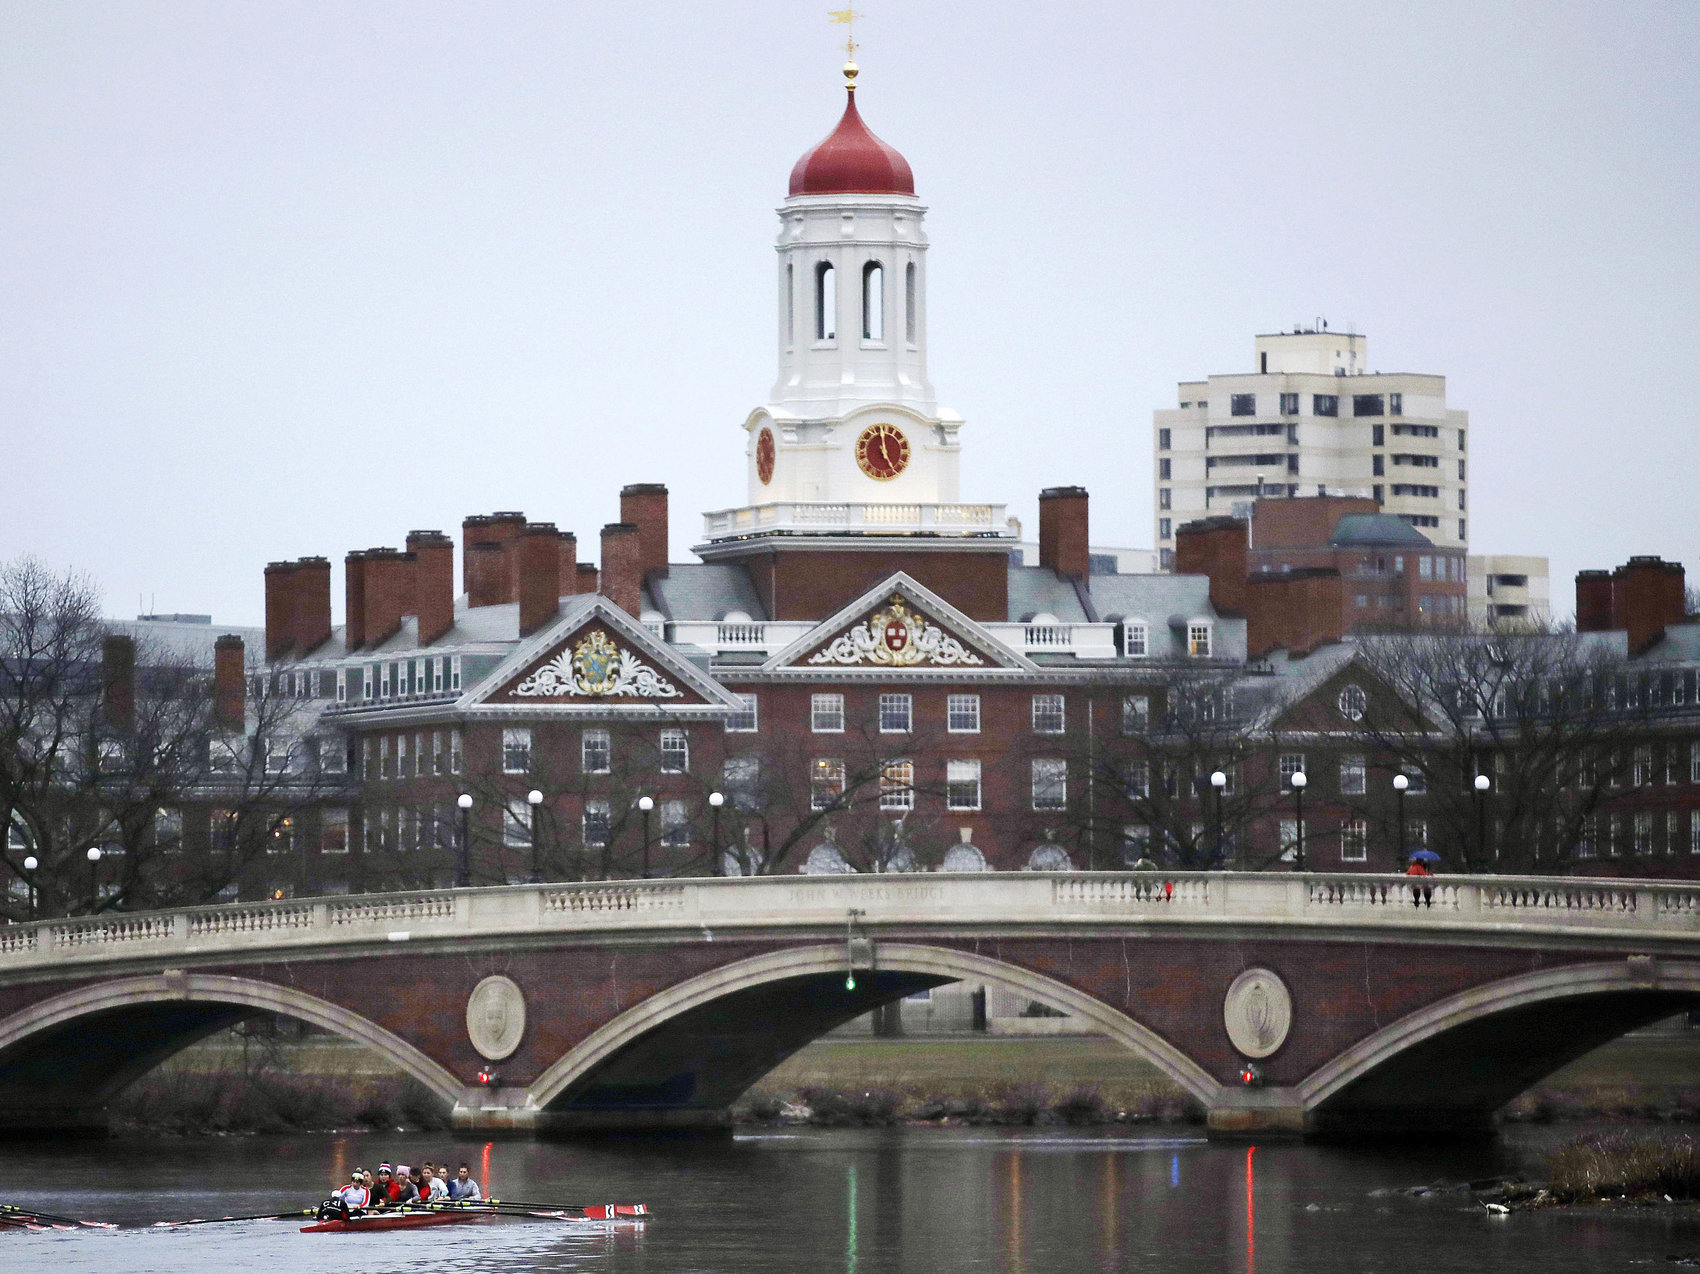 You Can't Hit Unsend: How A Social Media Scandal Unfolded At Harvard